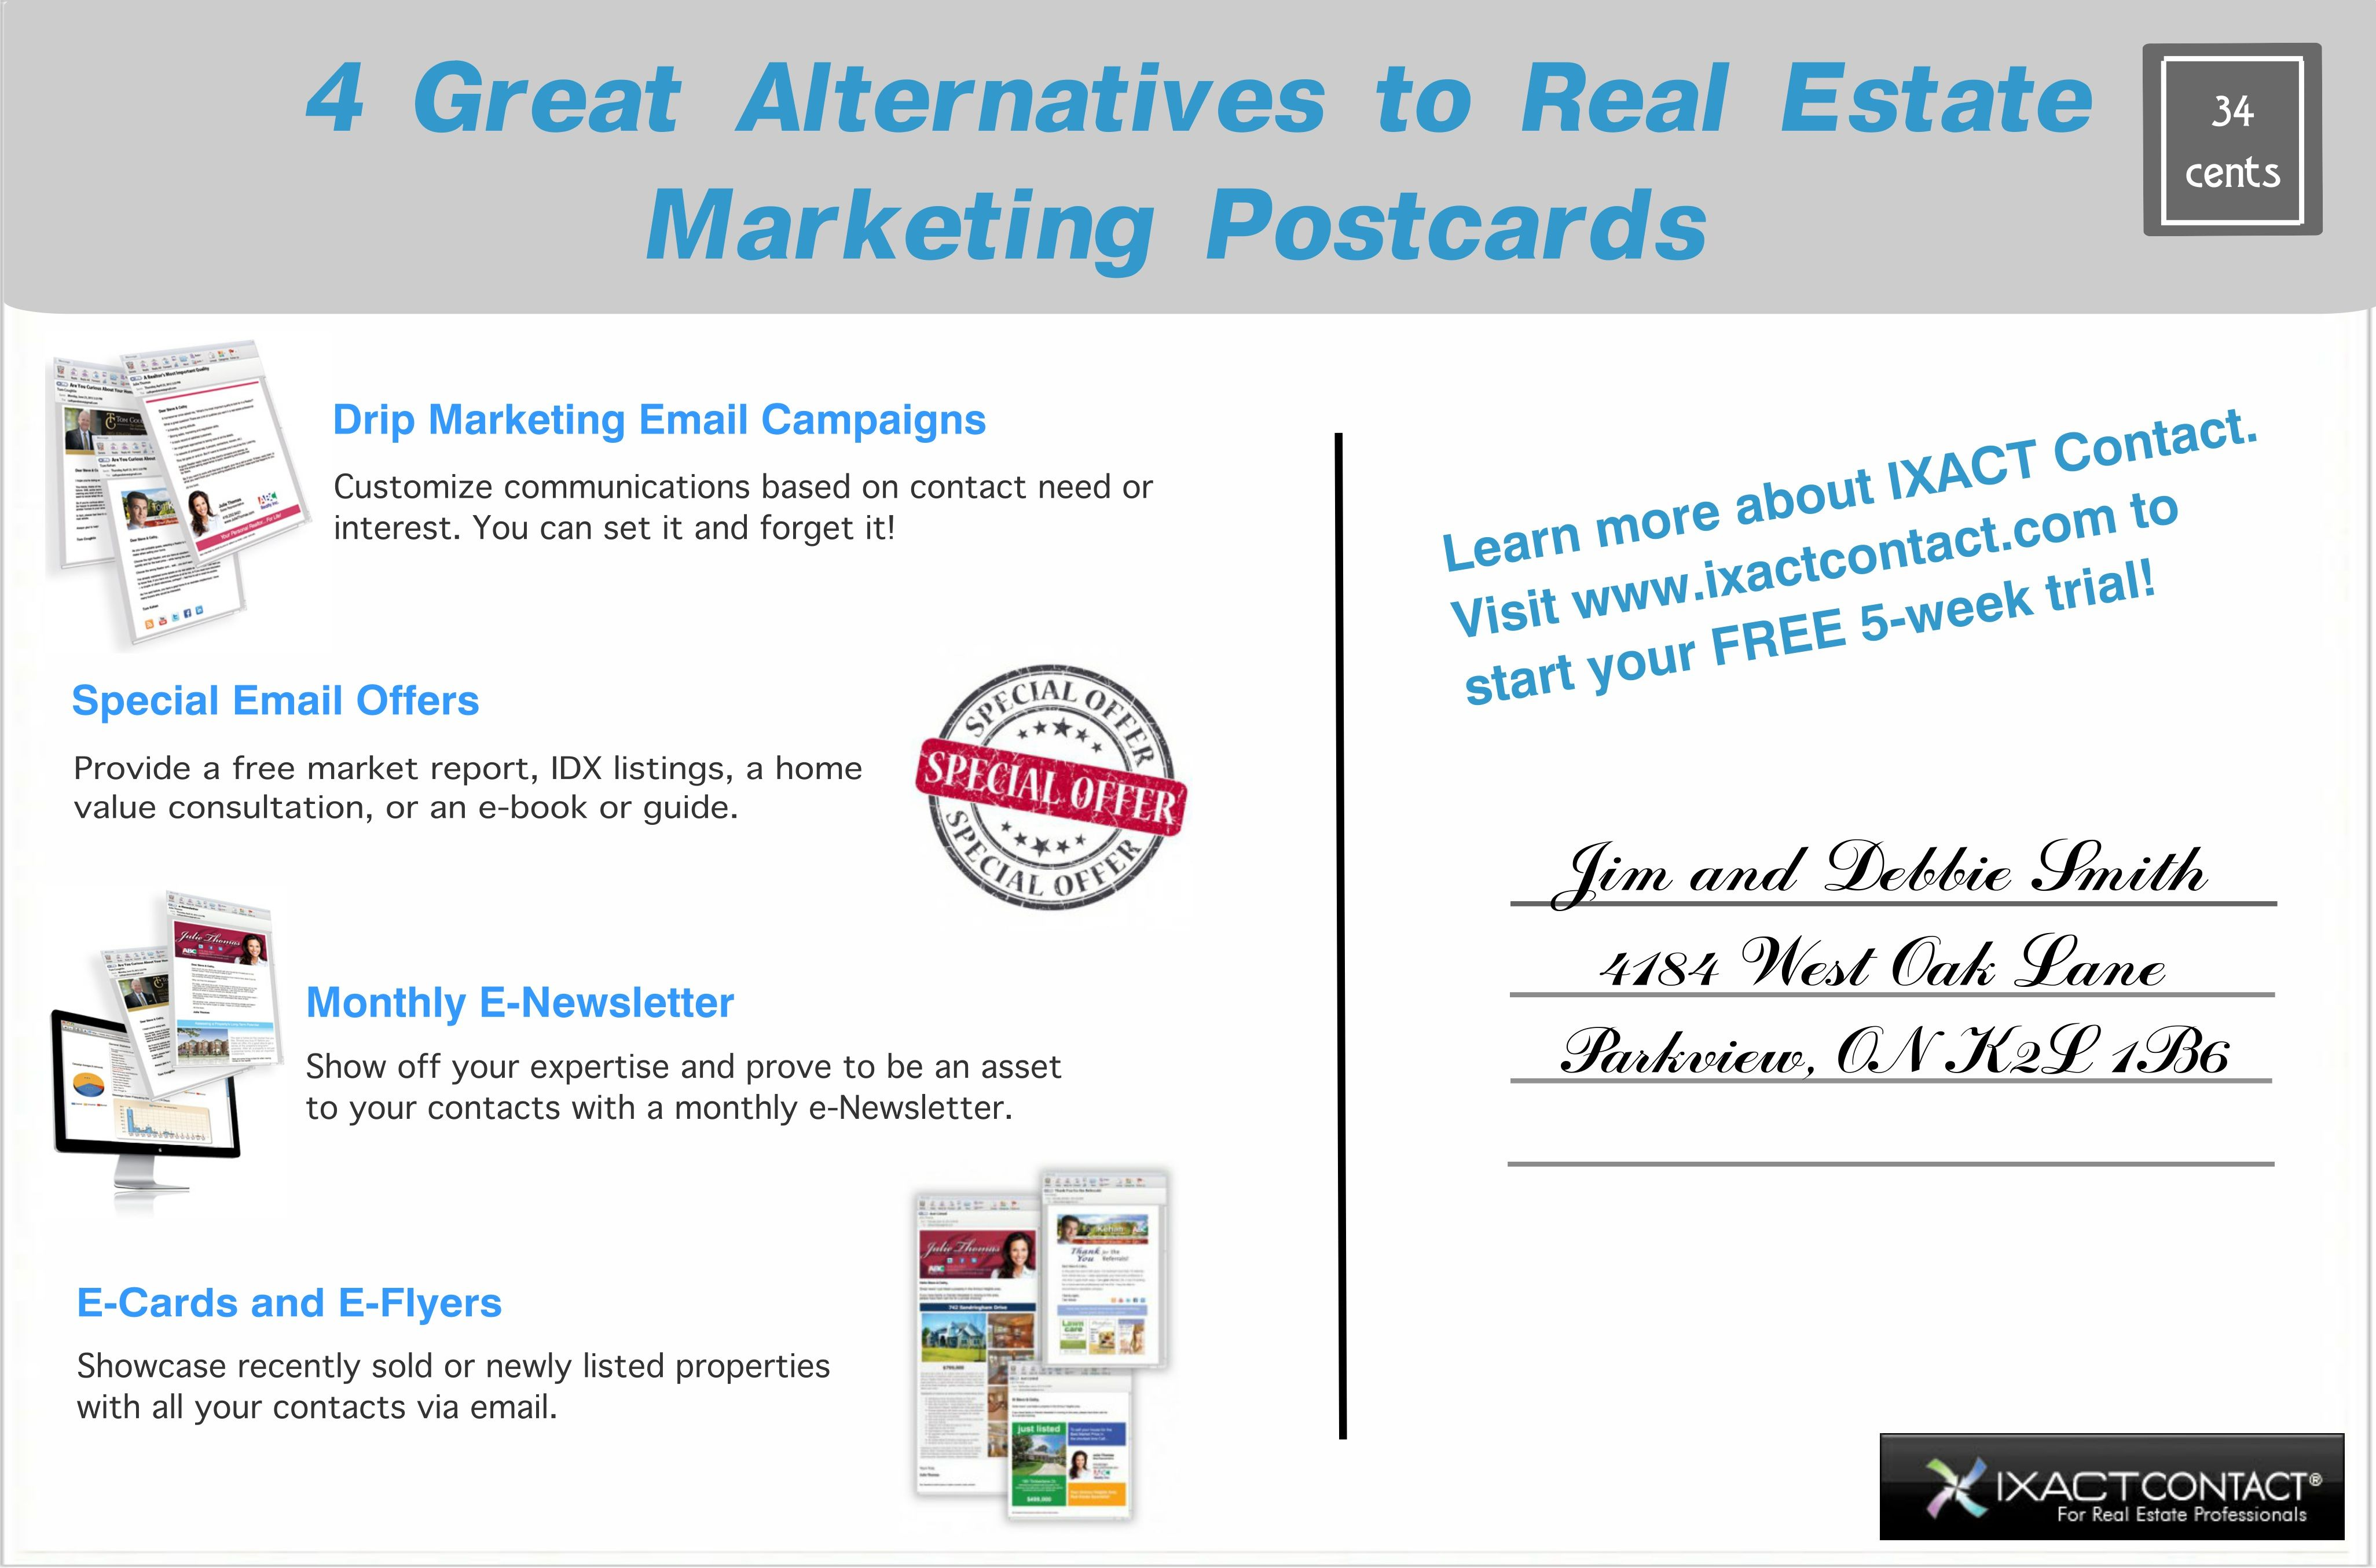 4 great alternatives to real estate marketing postcards